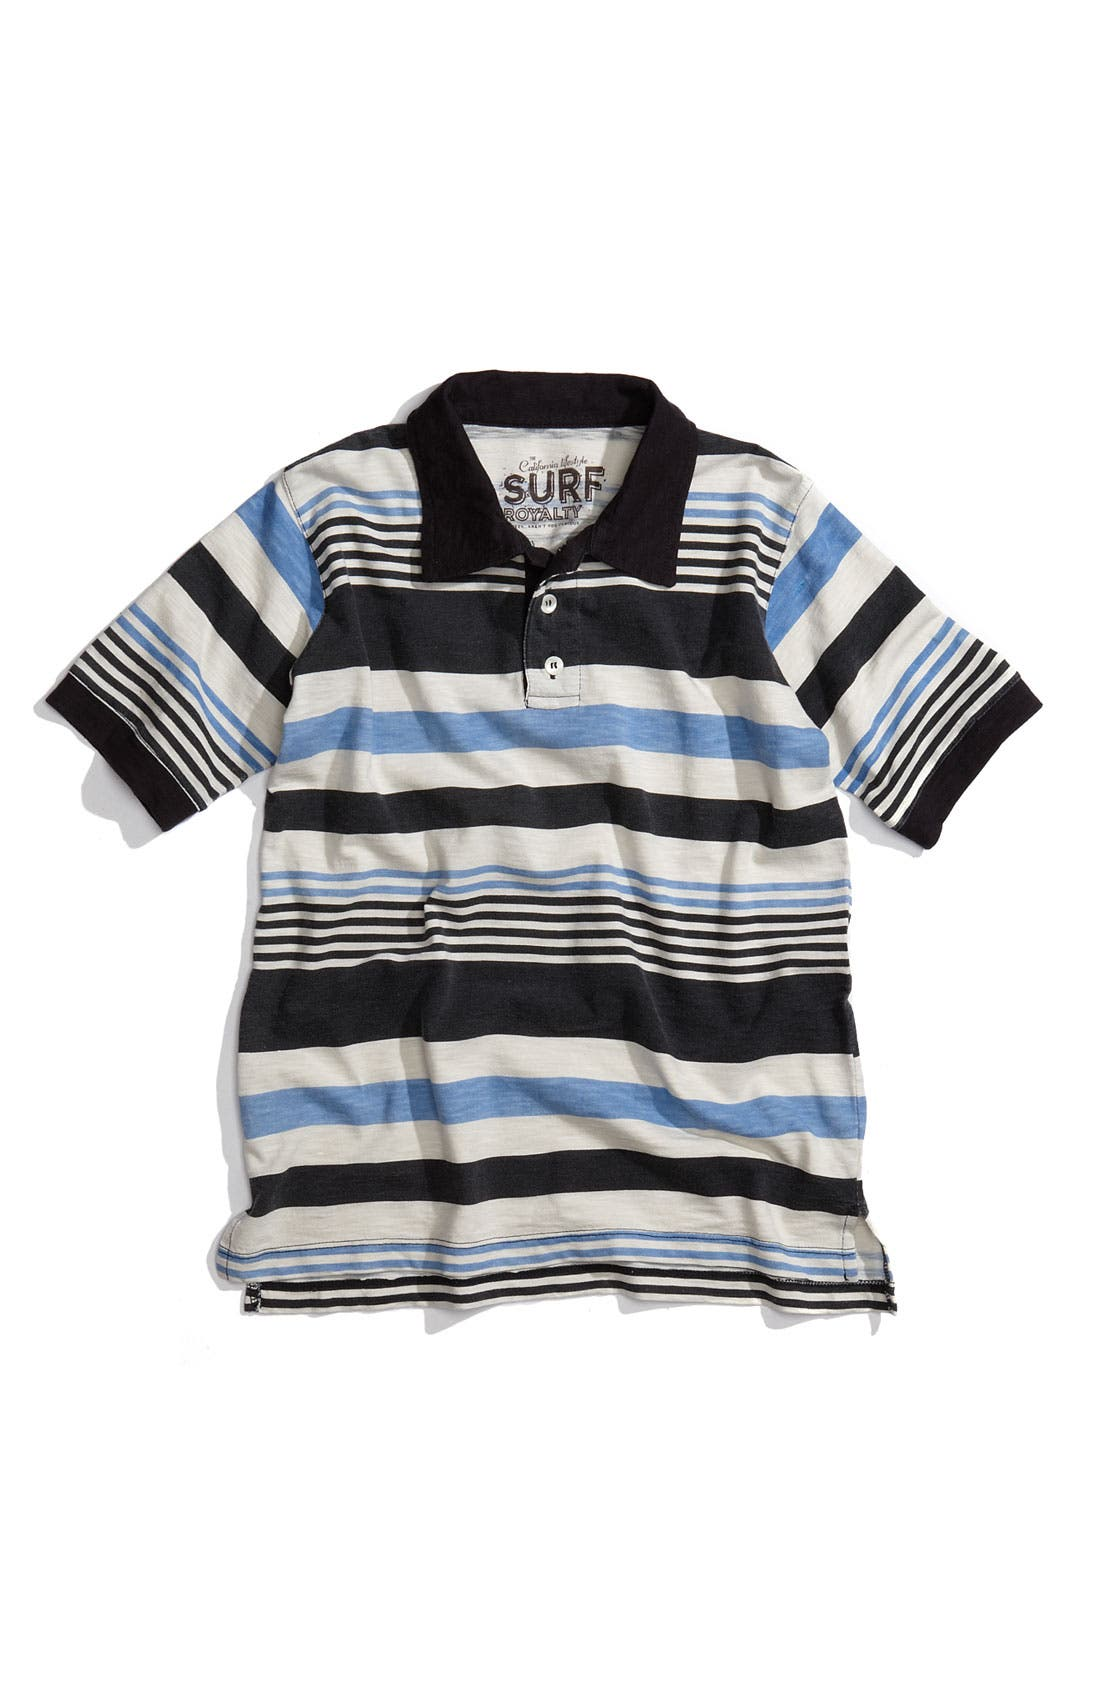 Alternate Image 1 Selected - Peek 'Malibu Stripe' Polo (Toddler)